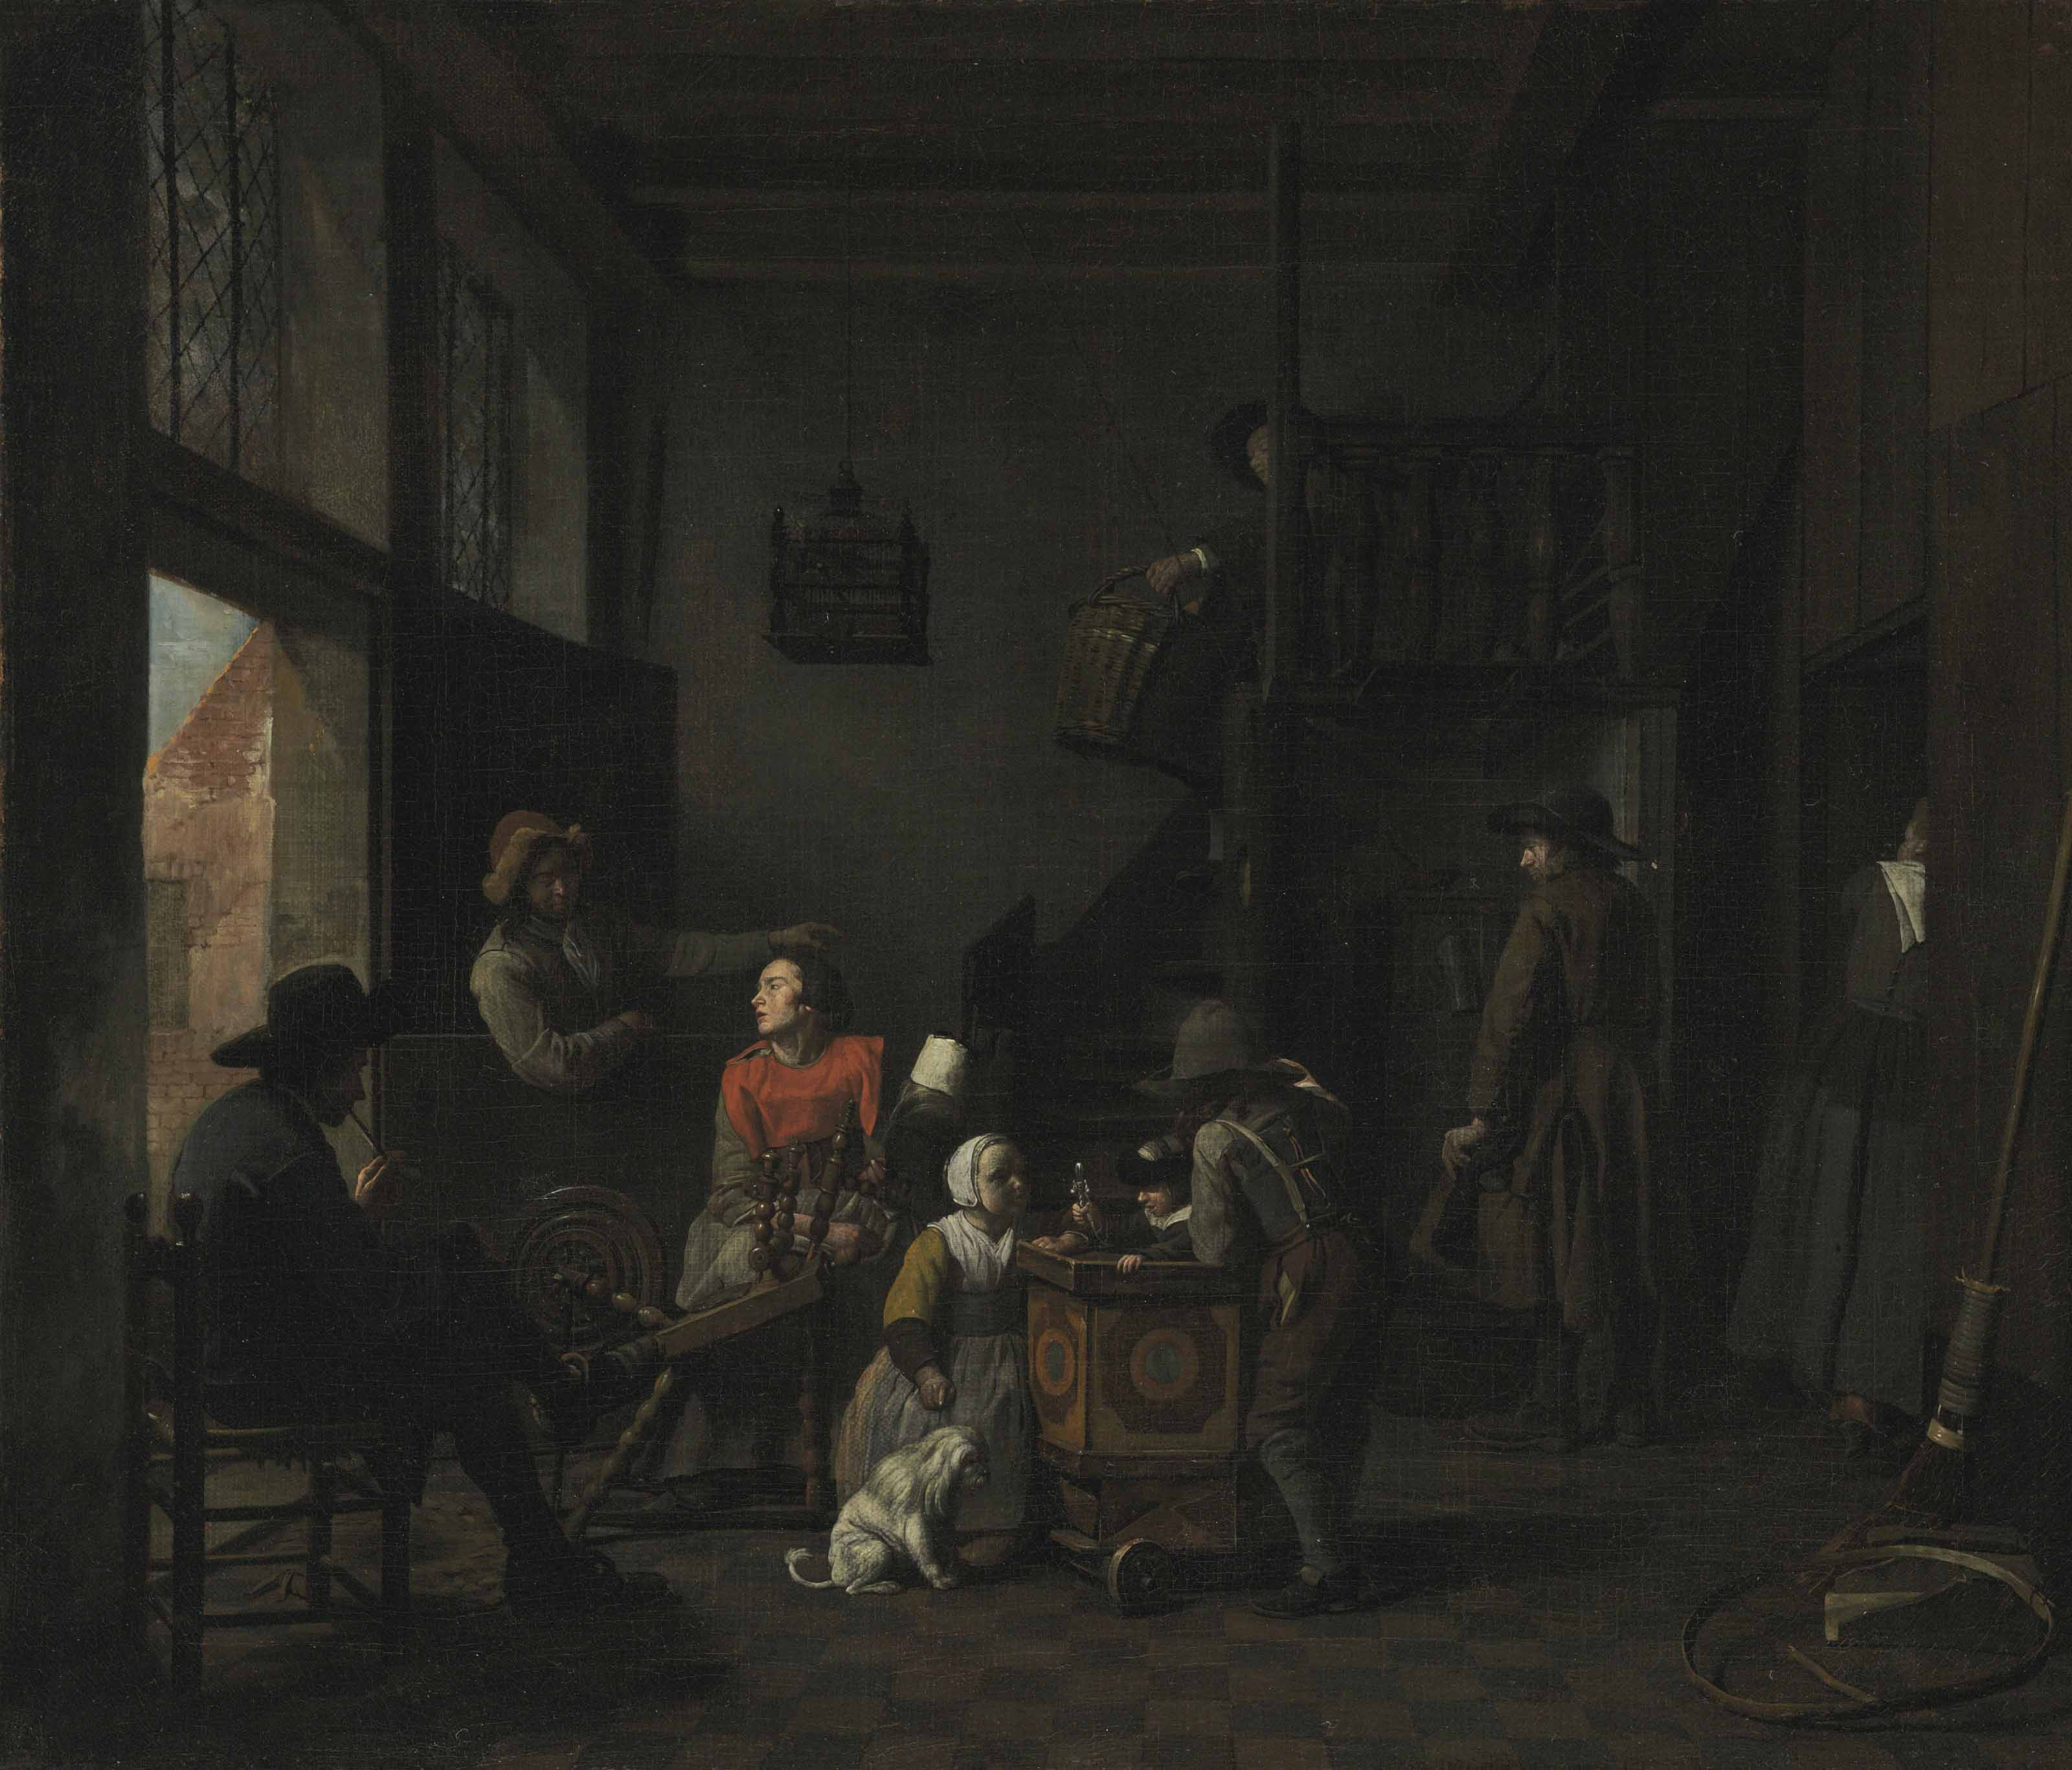 An interior with a woman at her spinning wheel, a child with a rattle, and other figures